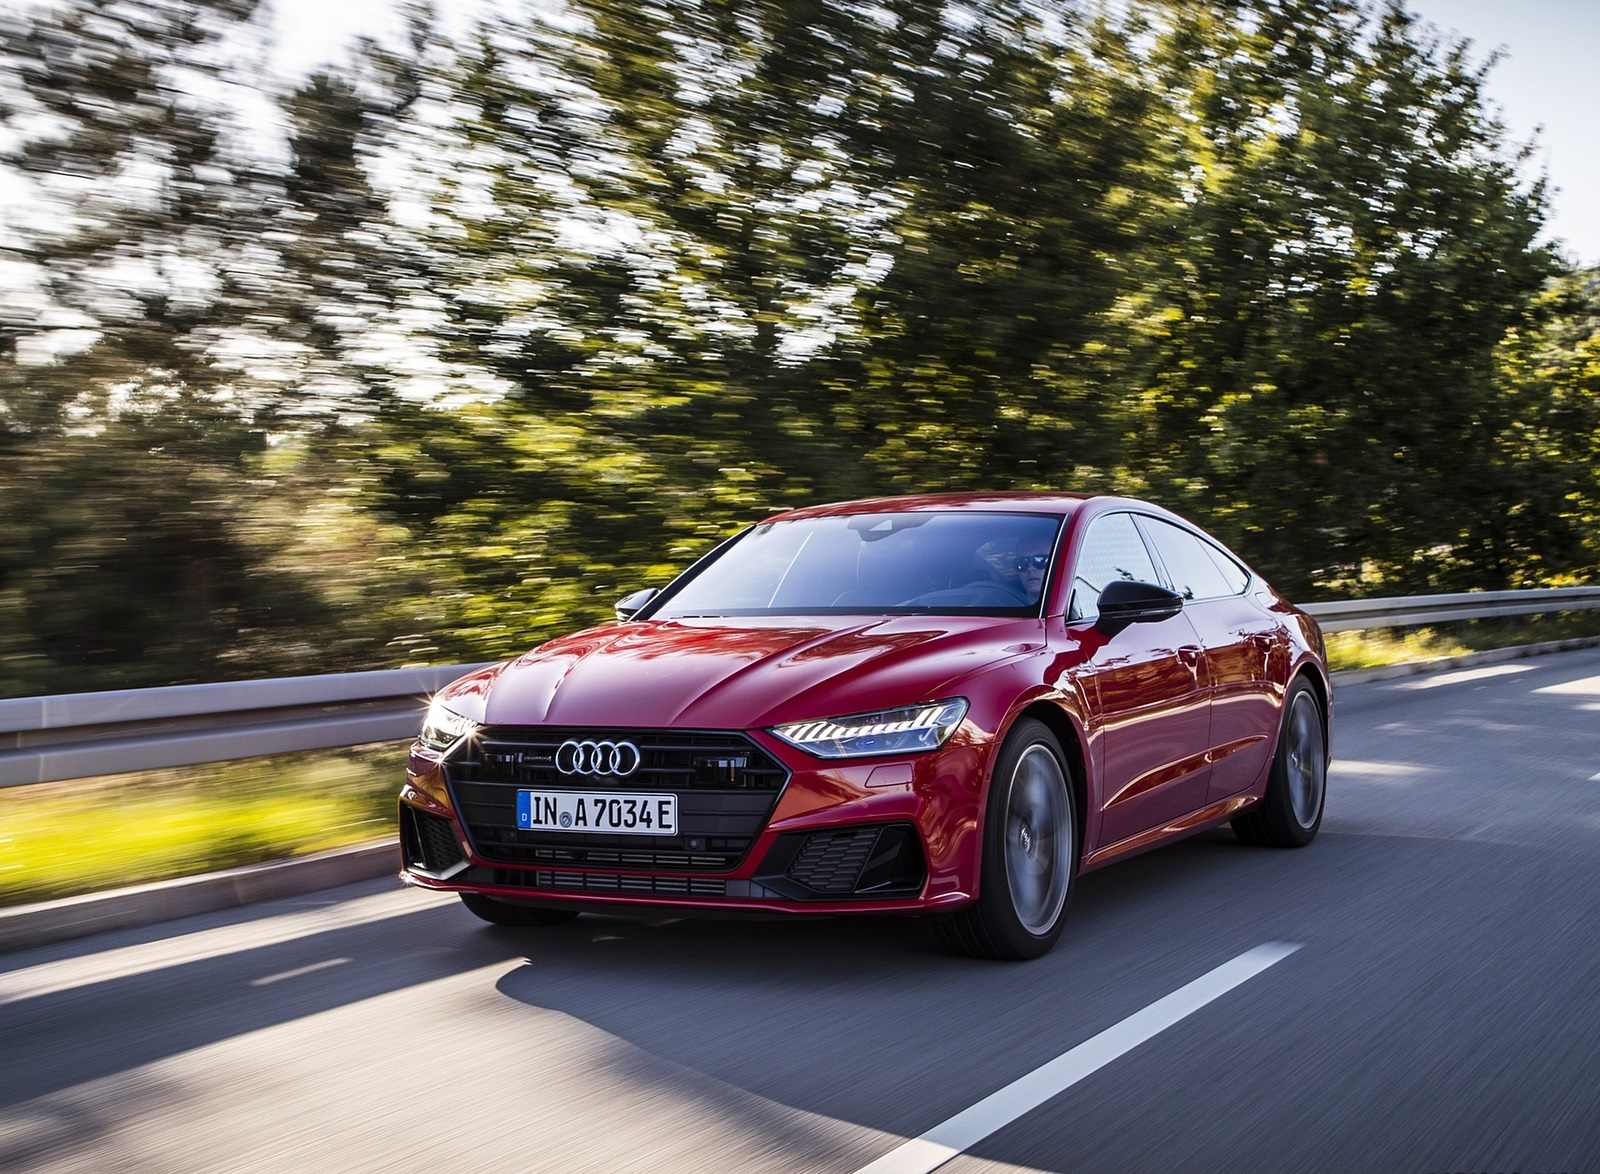 2020 Audi A7 Sportback 55 TFSI e quattro Plug-In Hybrid (Color: Tango Red) Front Three-Quarter Wallpapers (14)